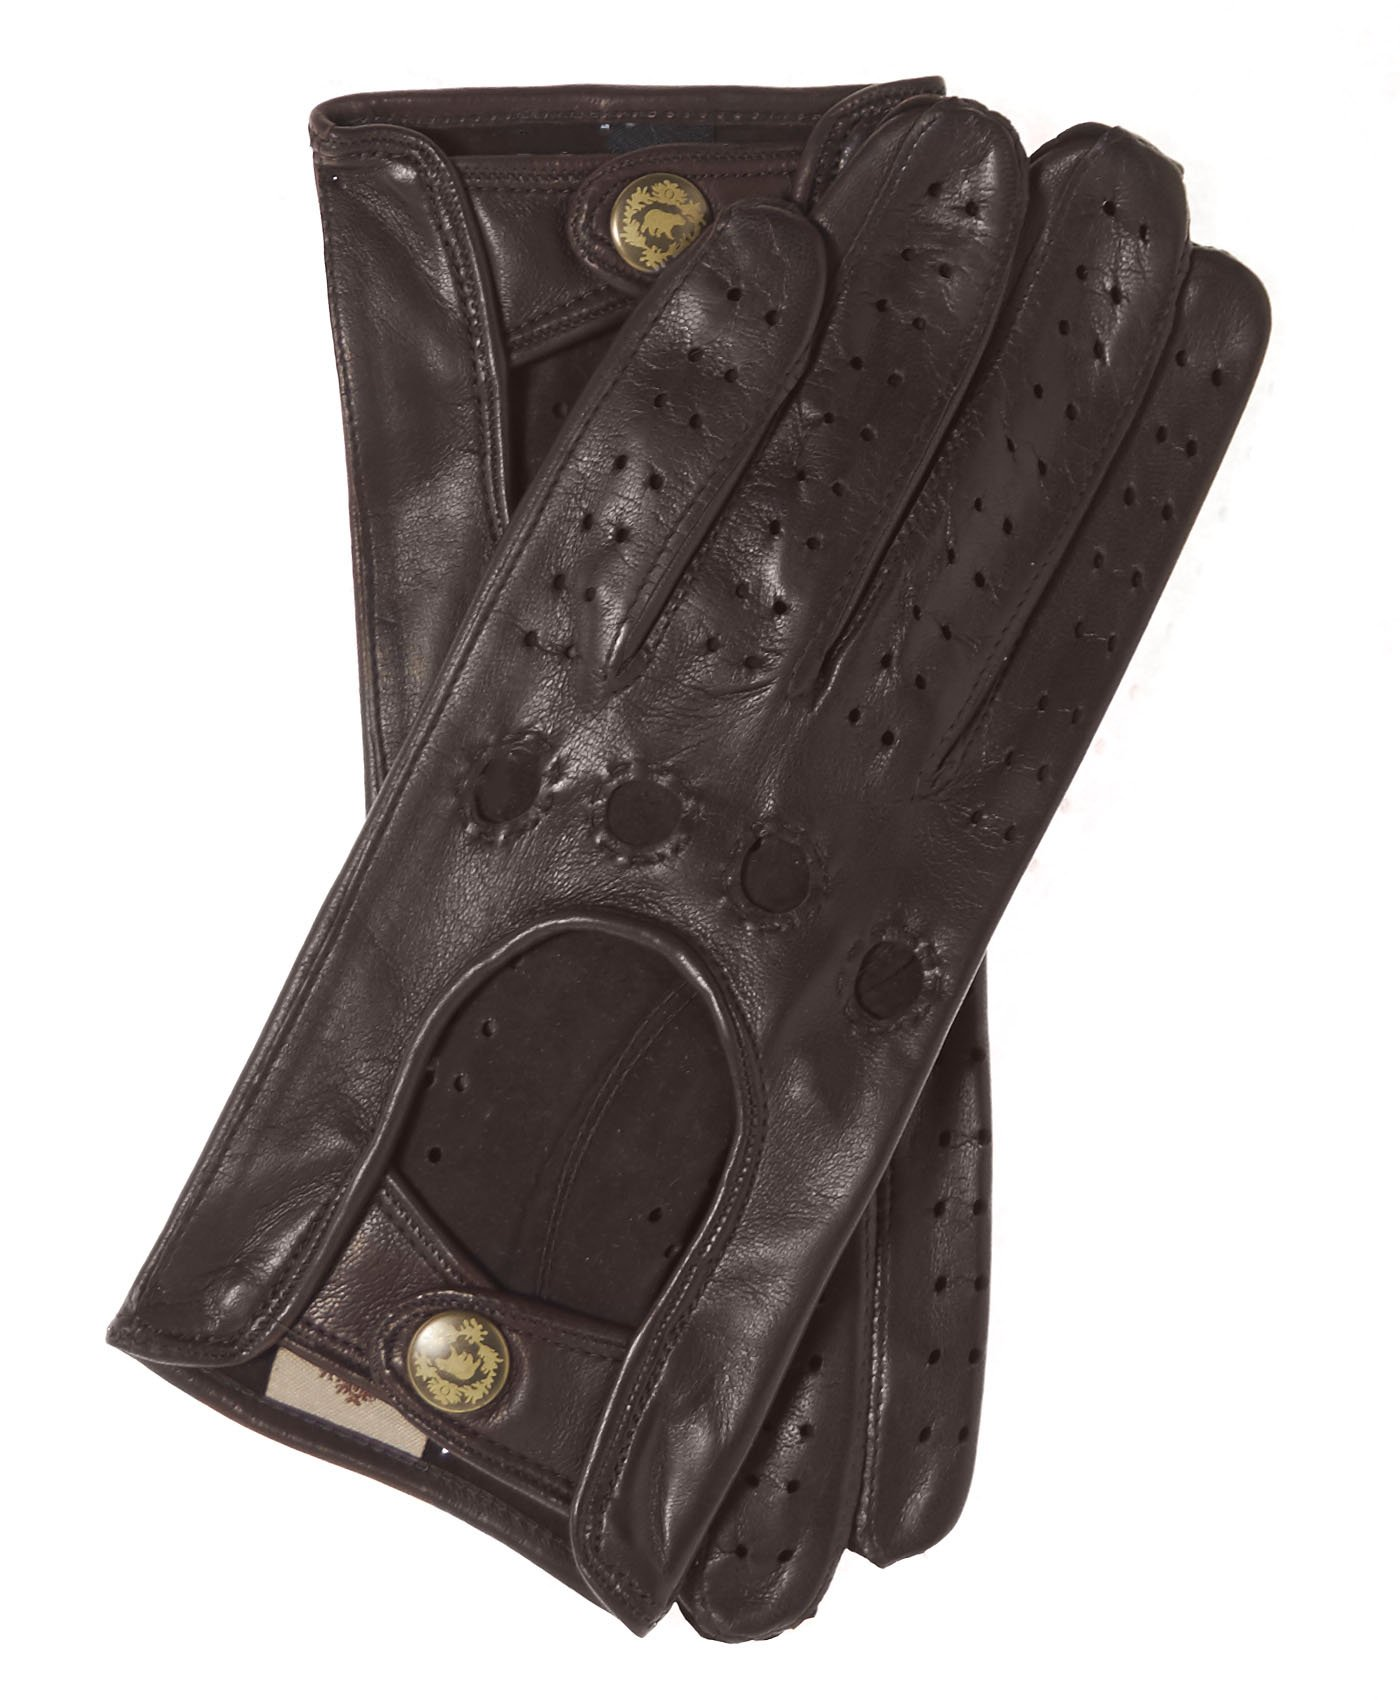 Fratelli Orsini Women's Italian Leather Driving Gloves Size 8 Color Brown